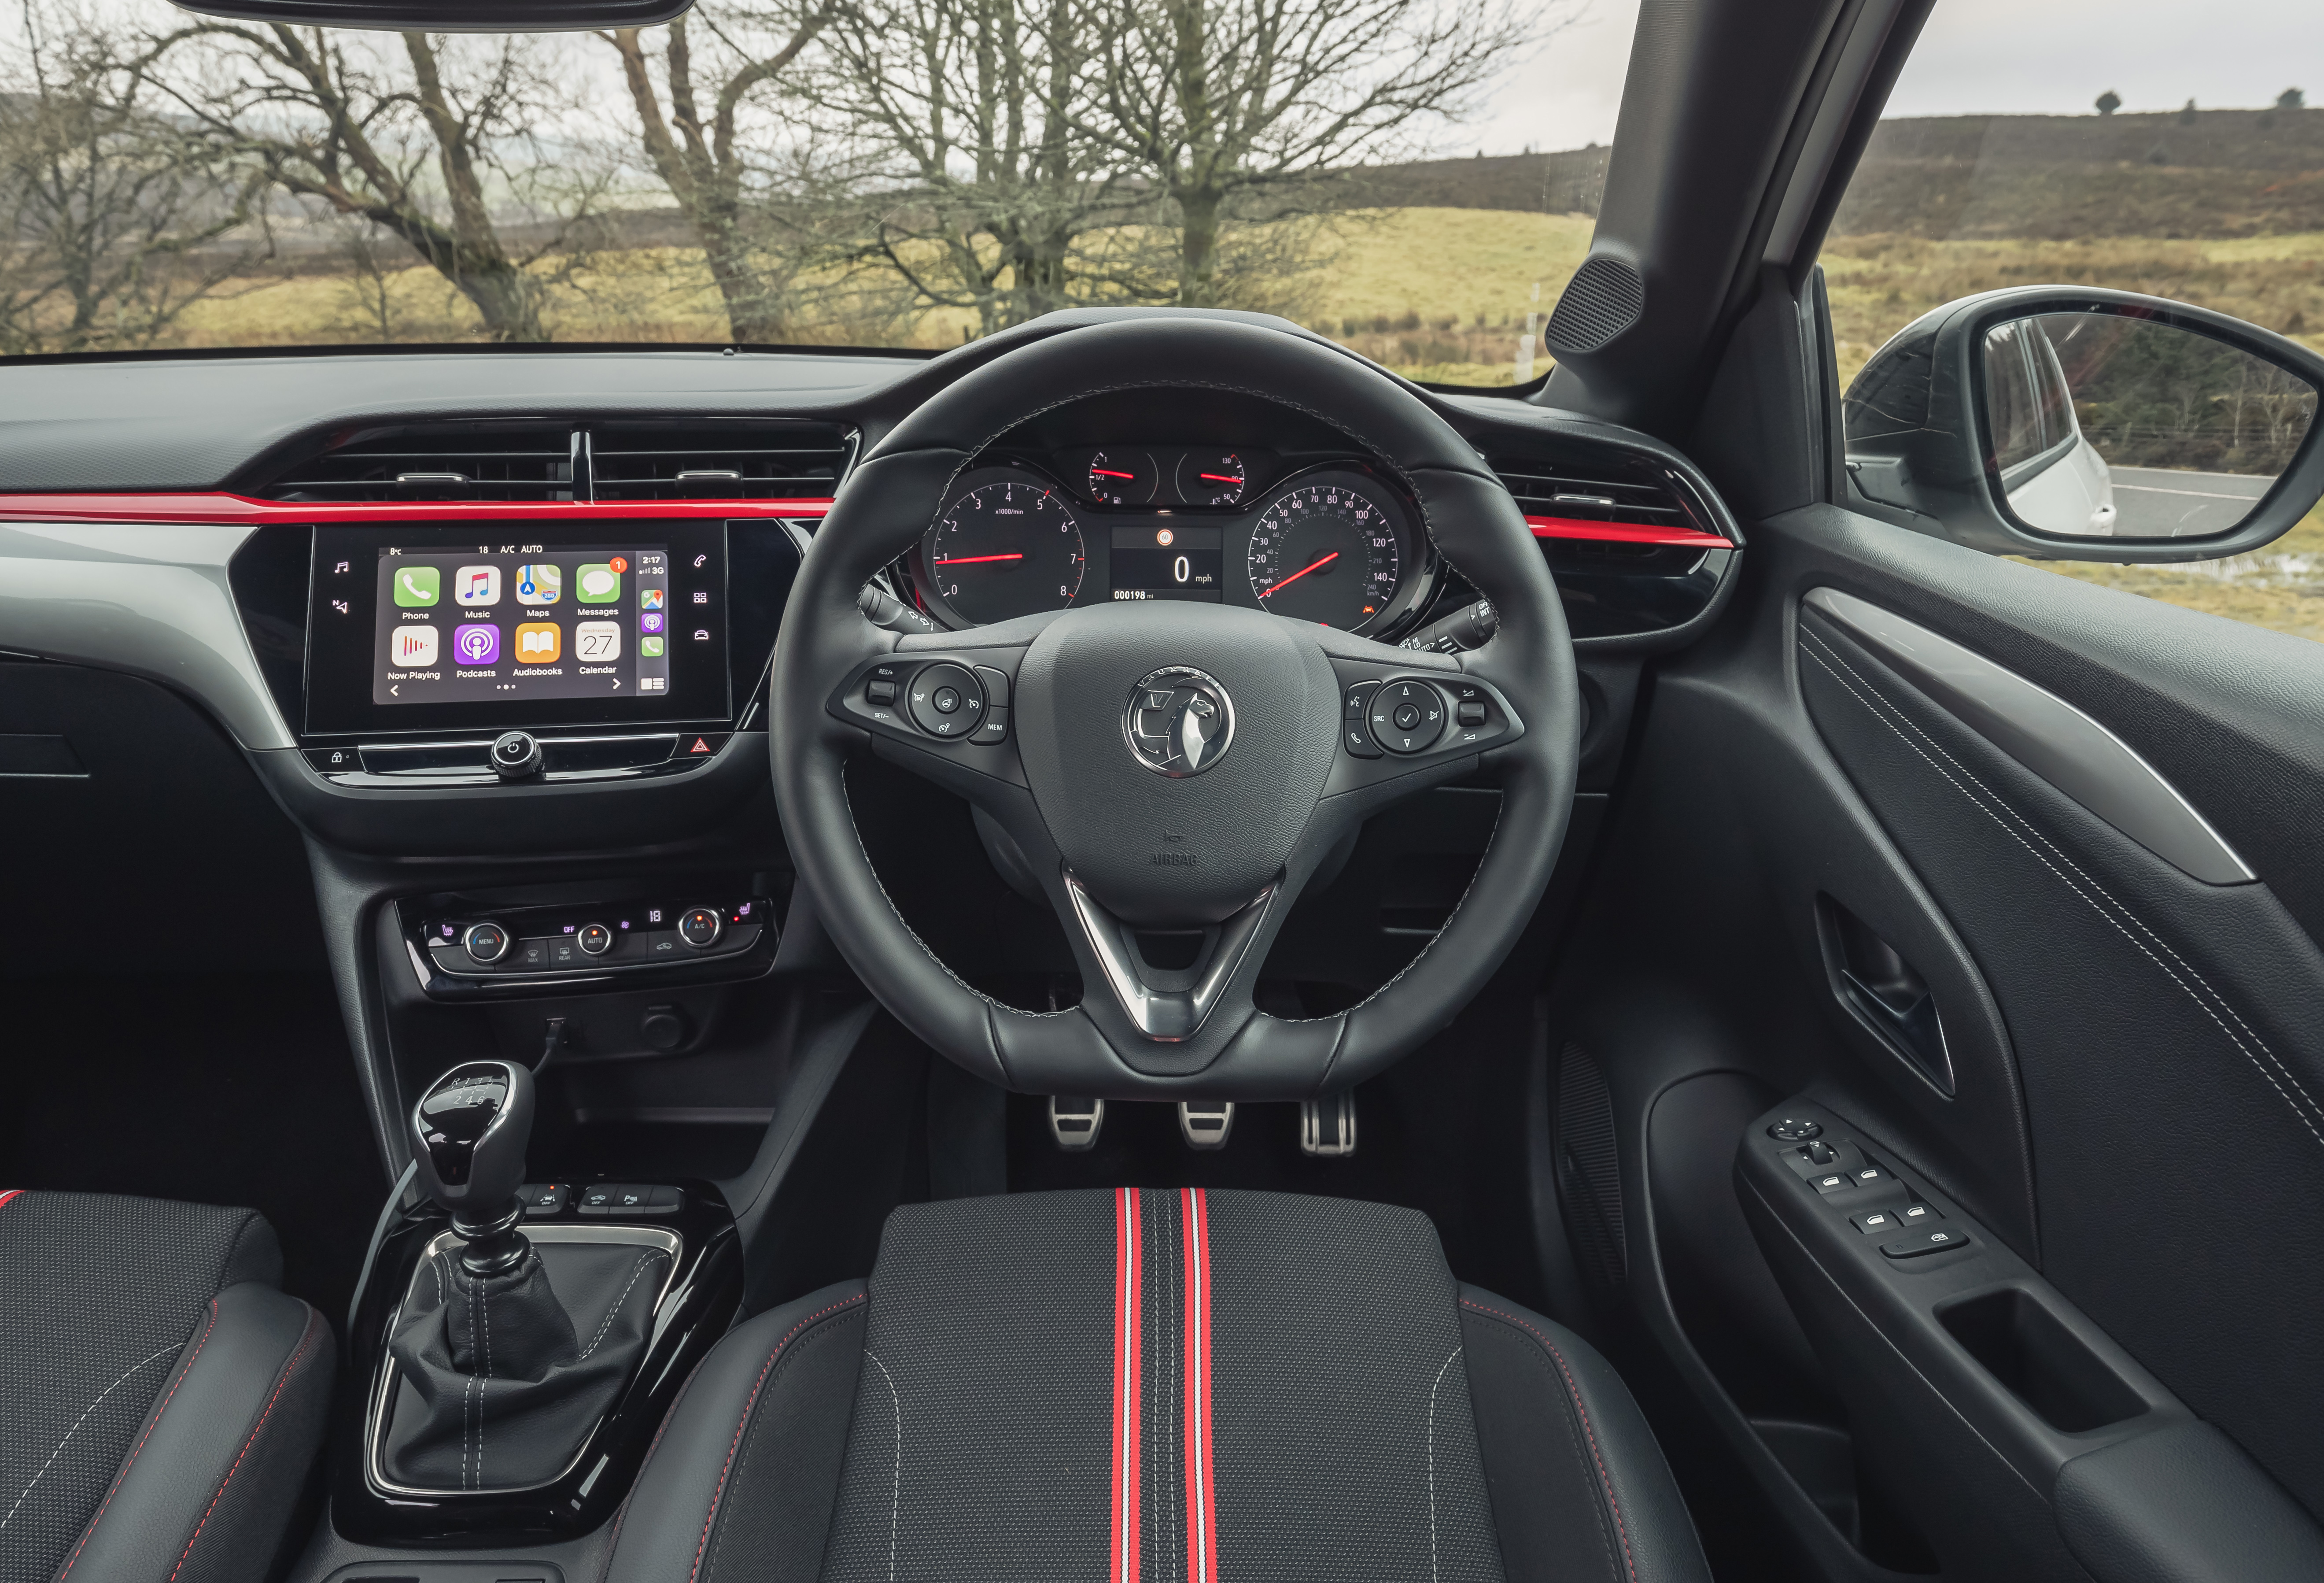 The Corsa's interior has been greatly improved